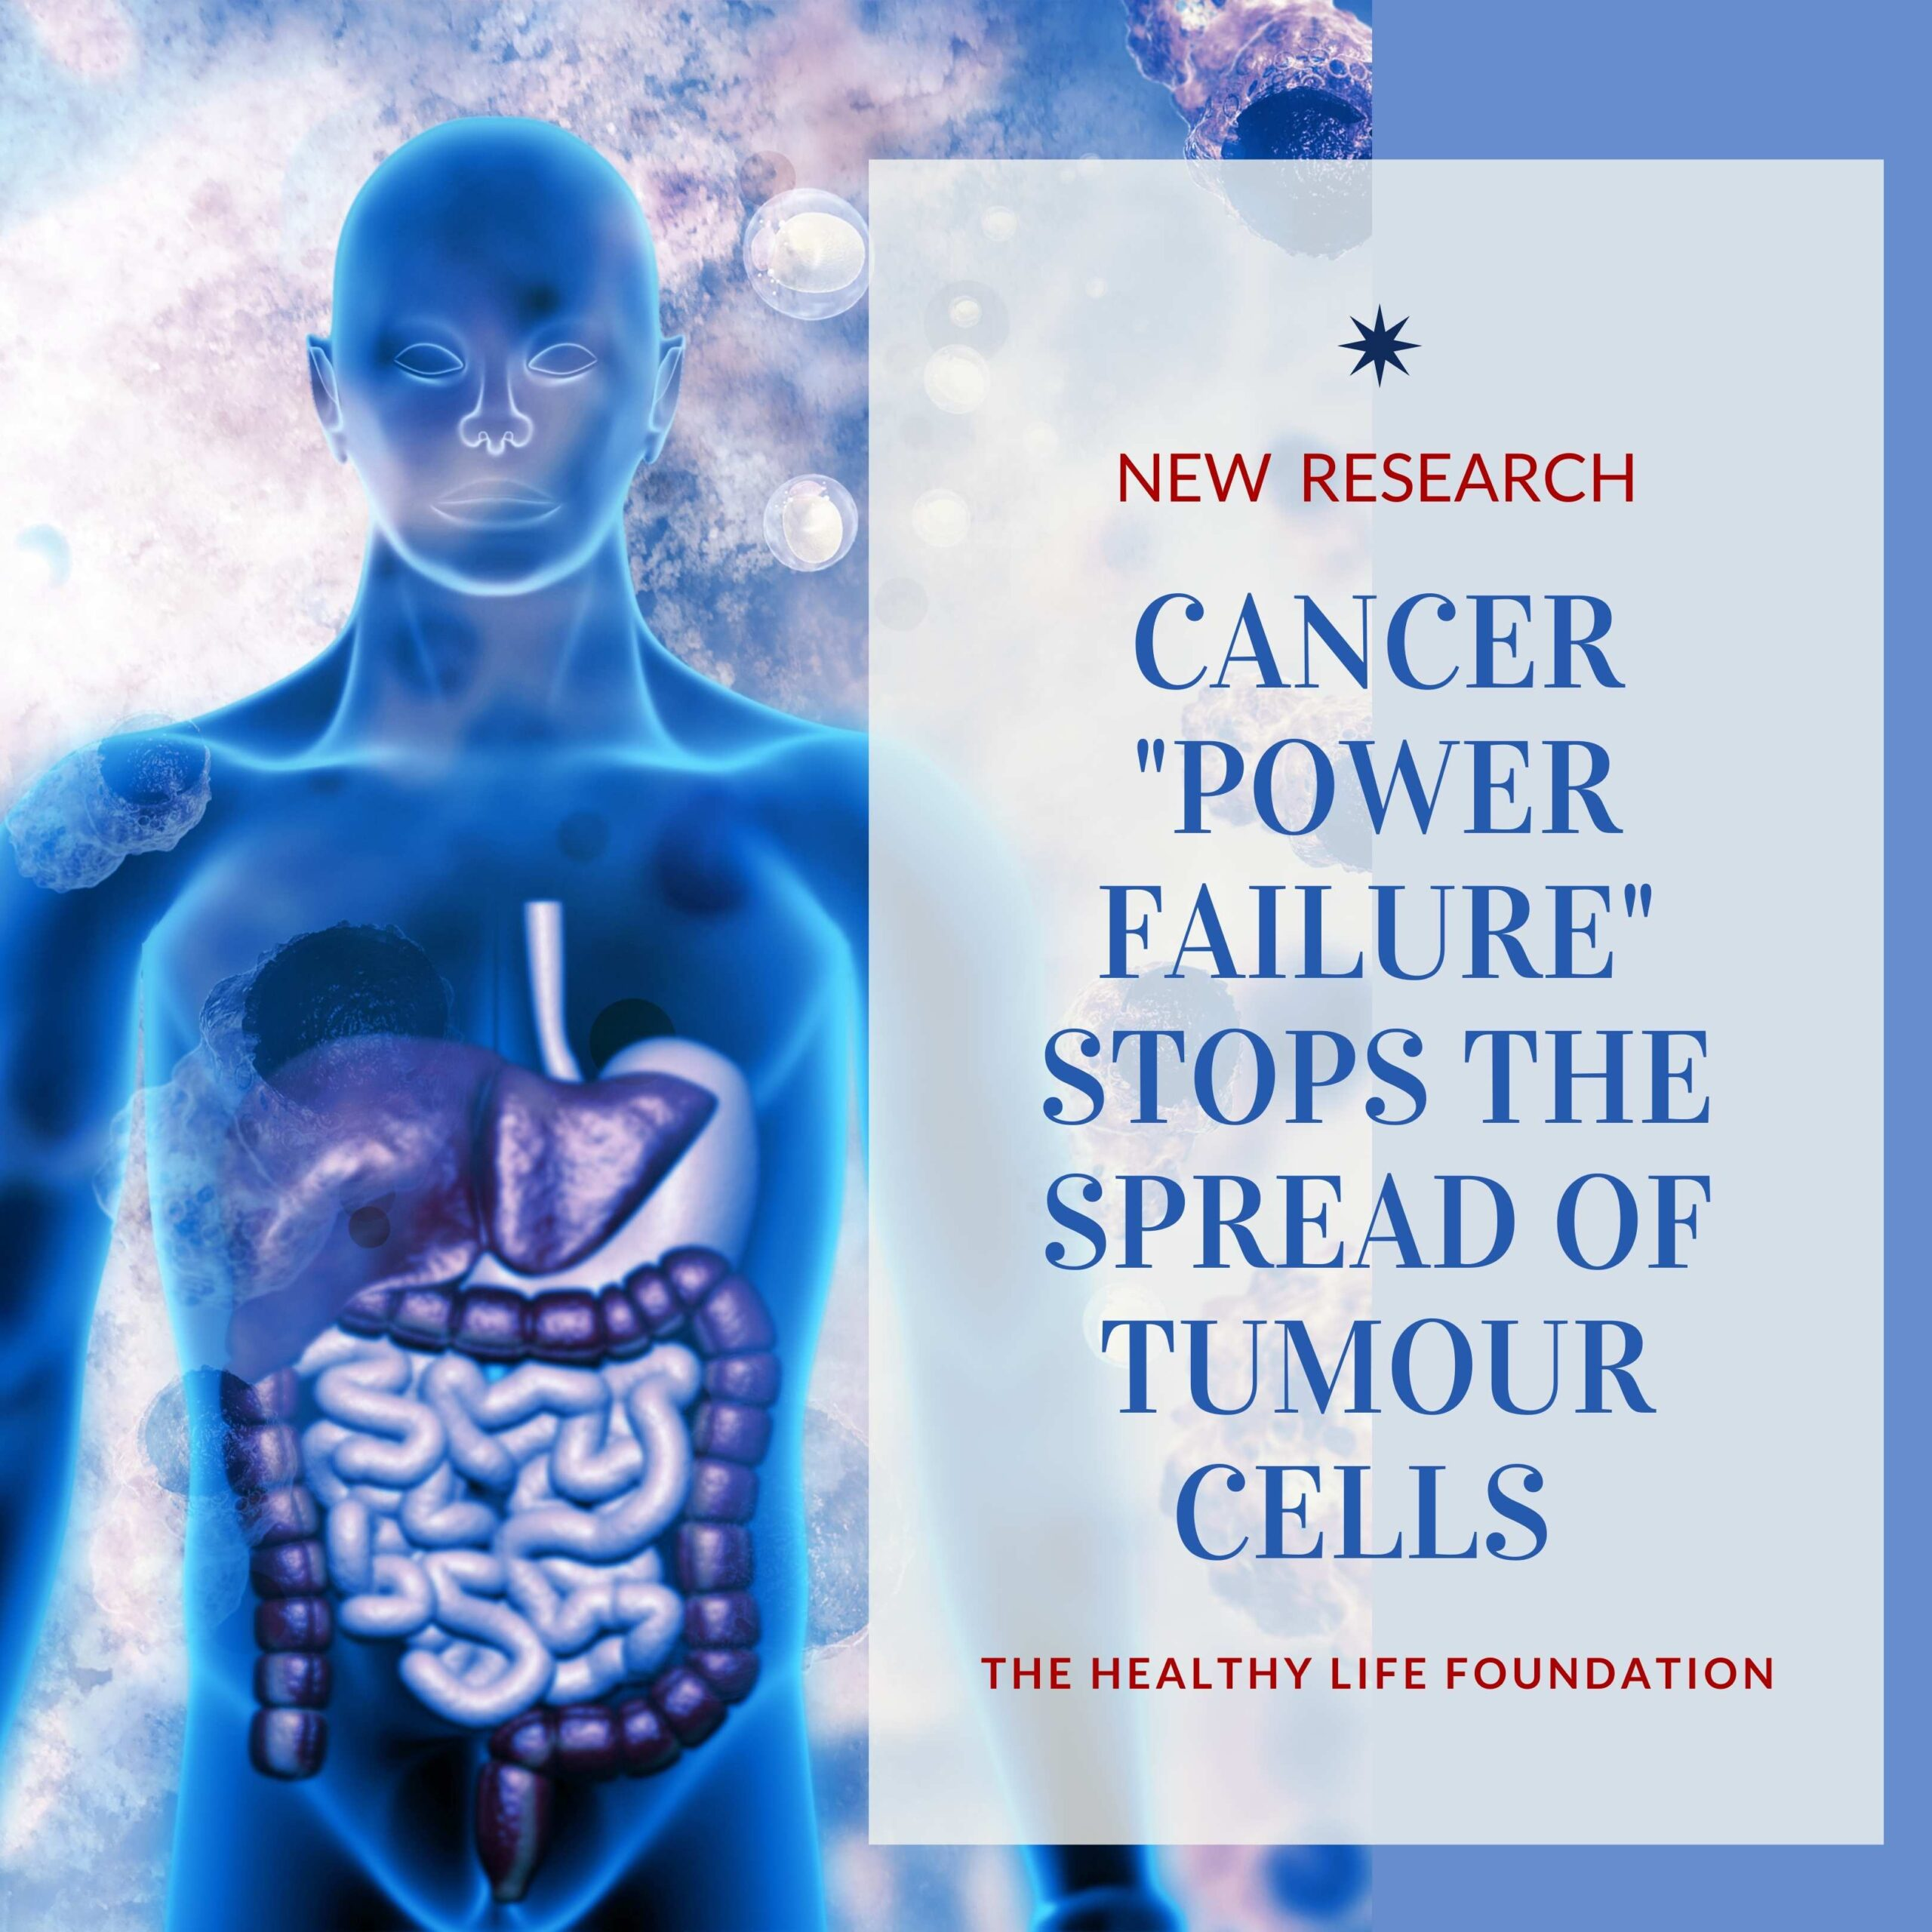 The healthy life foundation, Cancer Research, Stop the spread of cancer, Michael P. Lisanti